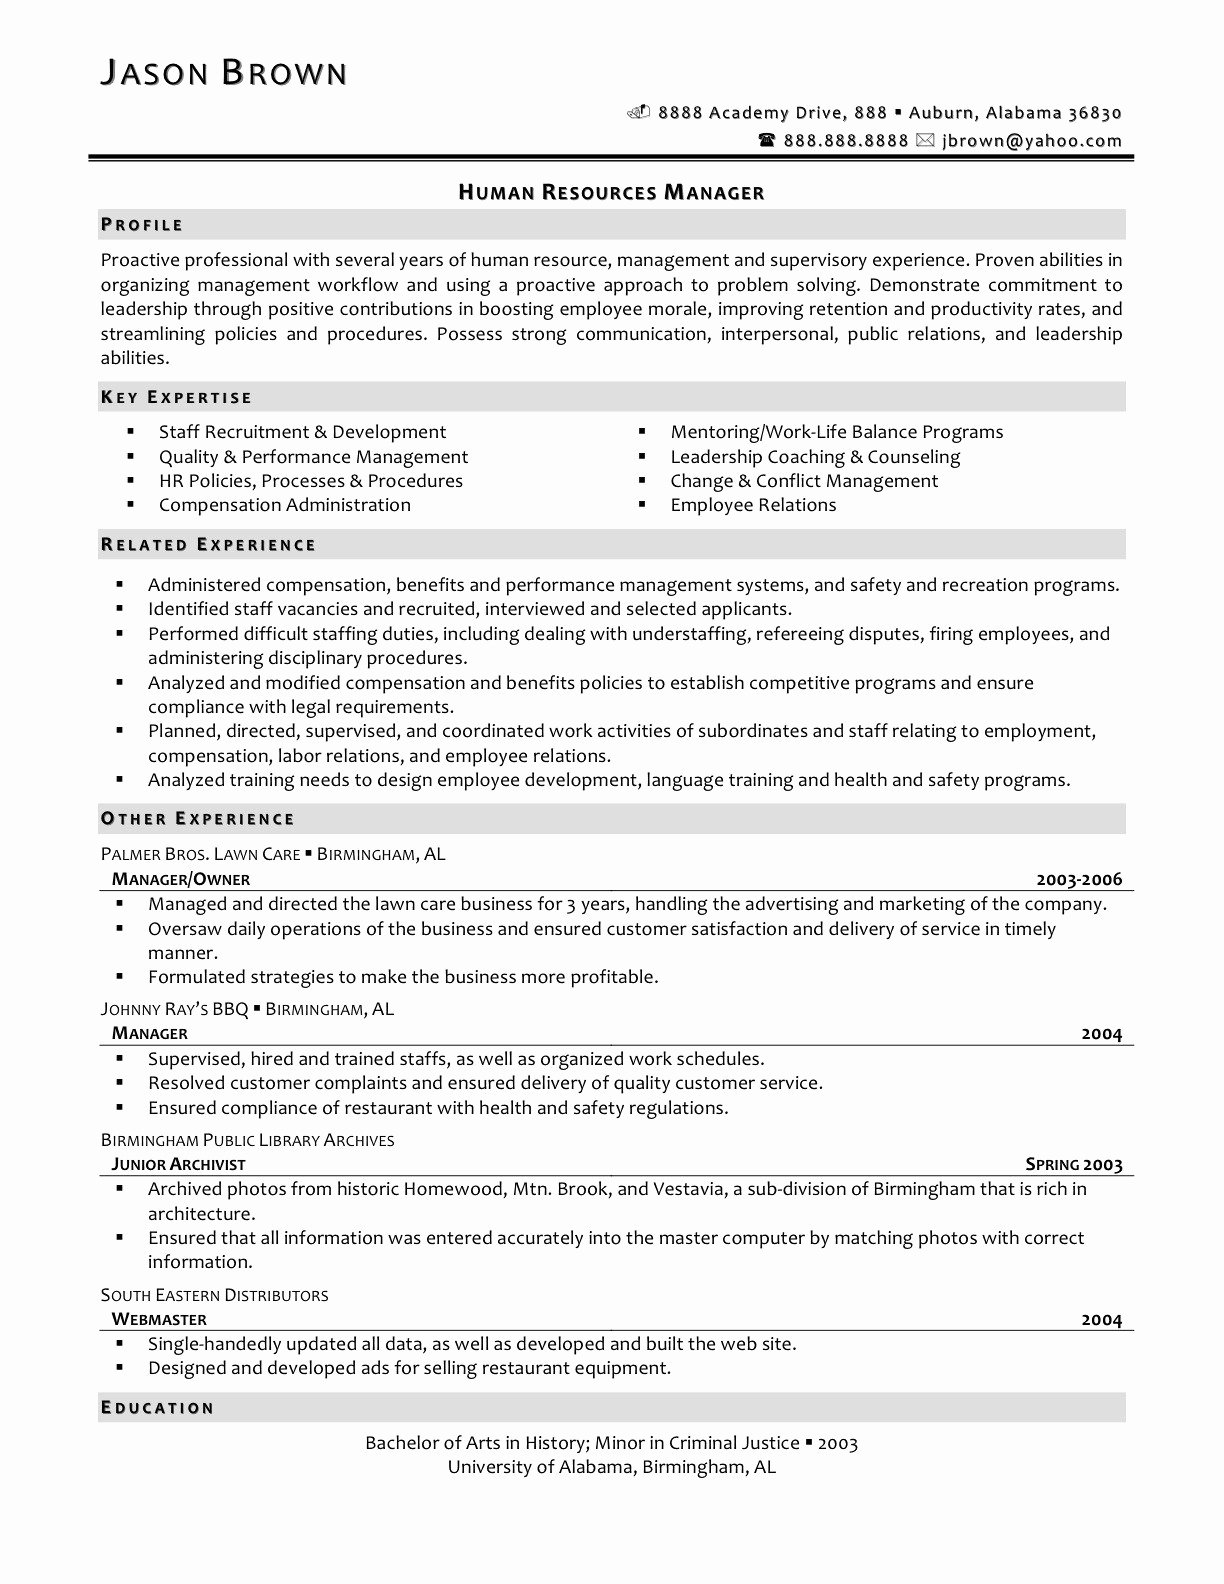 Hr Executive Resume Sample Awesome Human Resources Business Partner Resume Templates – Hr